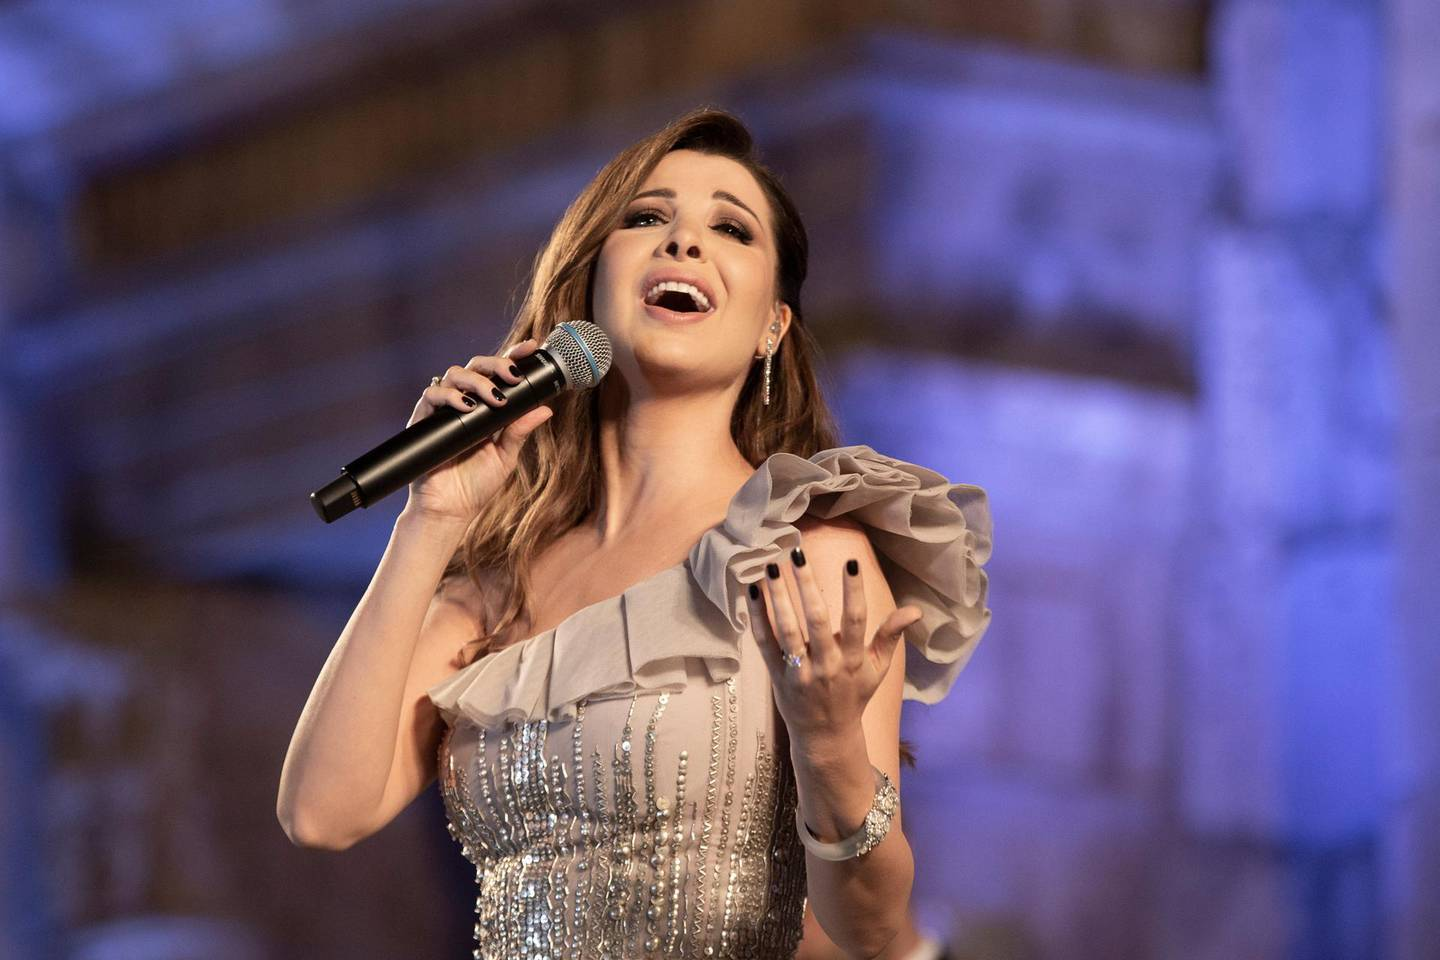 epa07730336 Lebanese singer Nancy Ajram performs during the 2019 Jerash Festival of Culture and Arts at the Jerash archeological site, Jerash, some 46 km North of Amman, Jordan, 20 July 2019. The Jerash festival takes part from 18 to 27 July 2019.  EPA/ANDRE PAIN